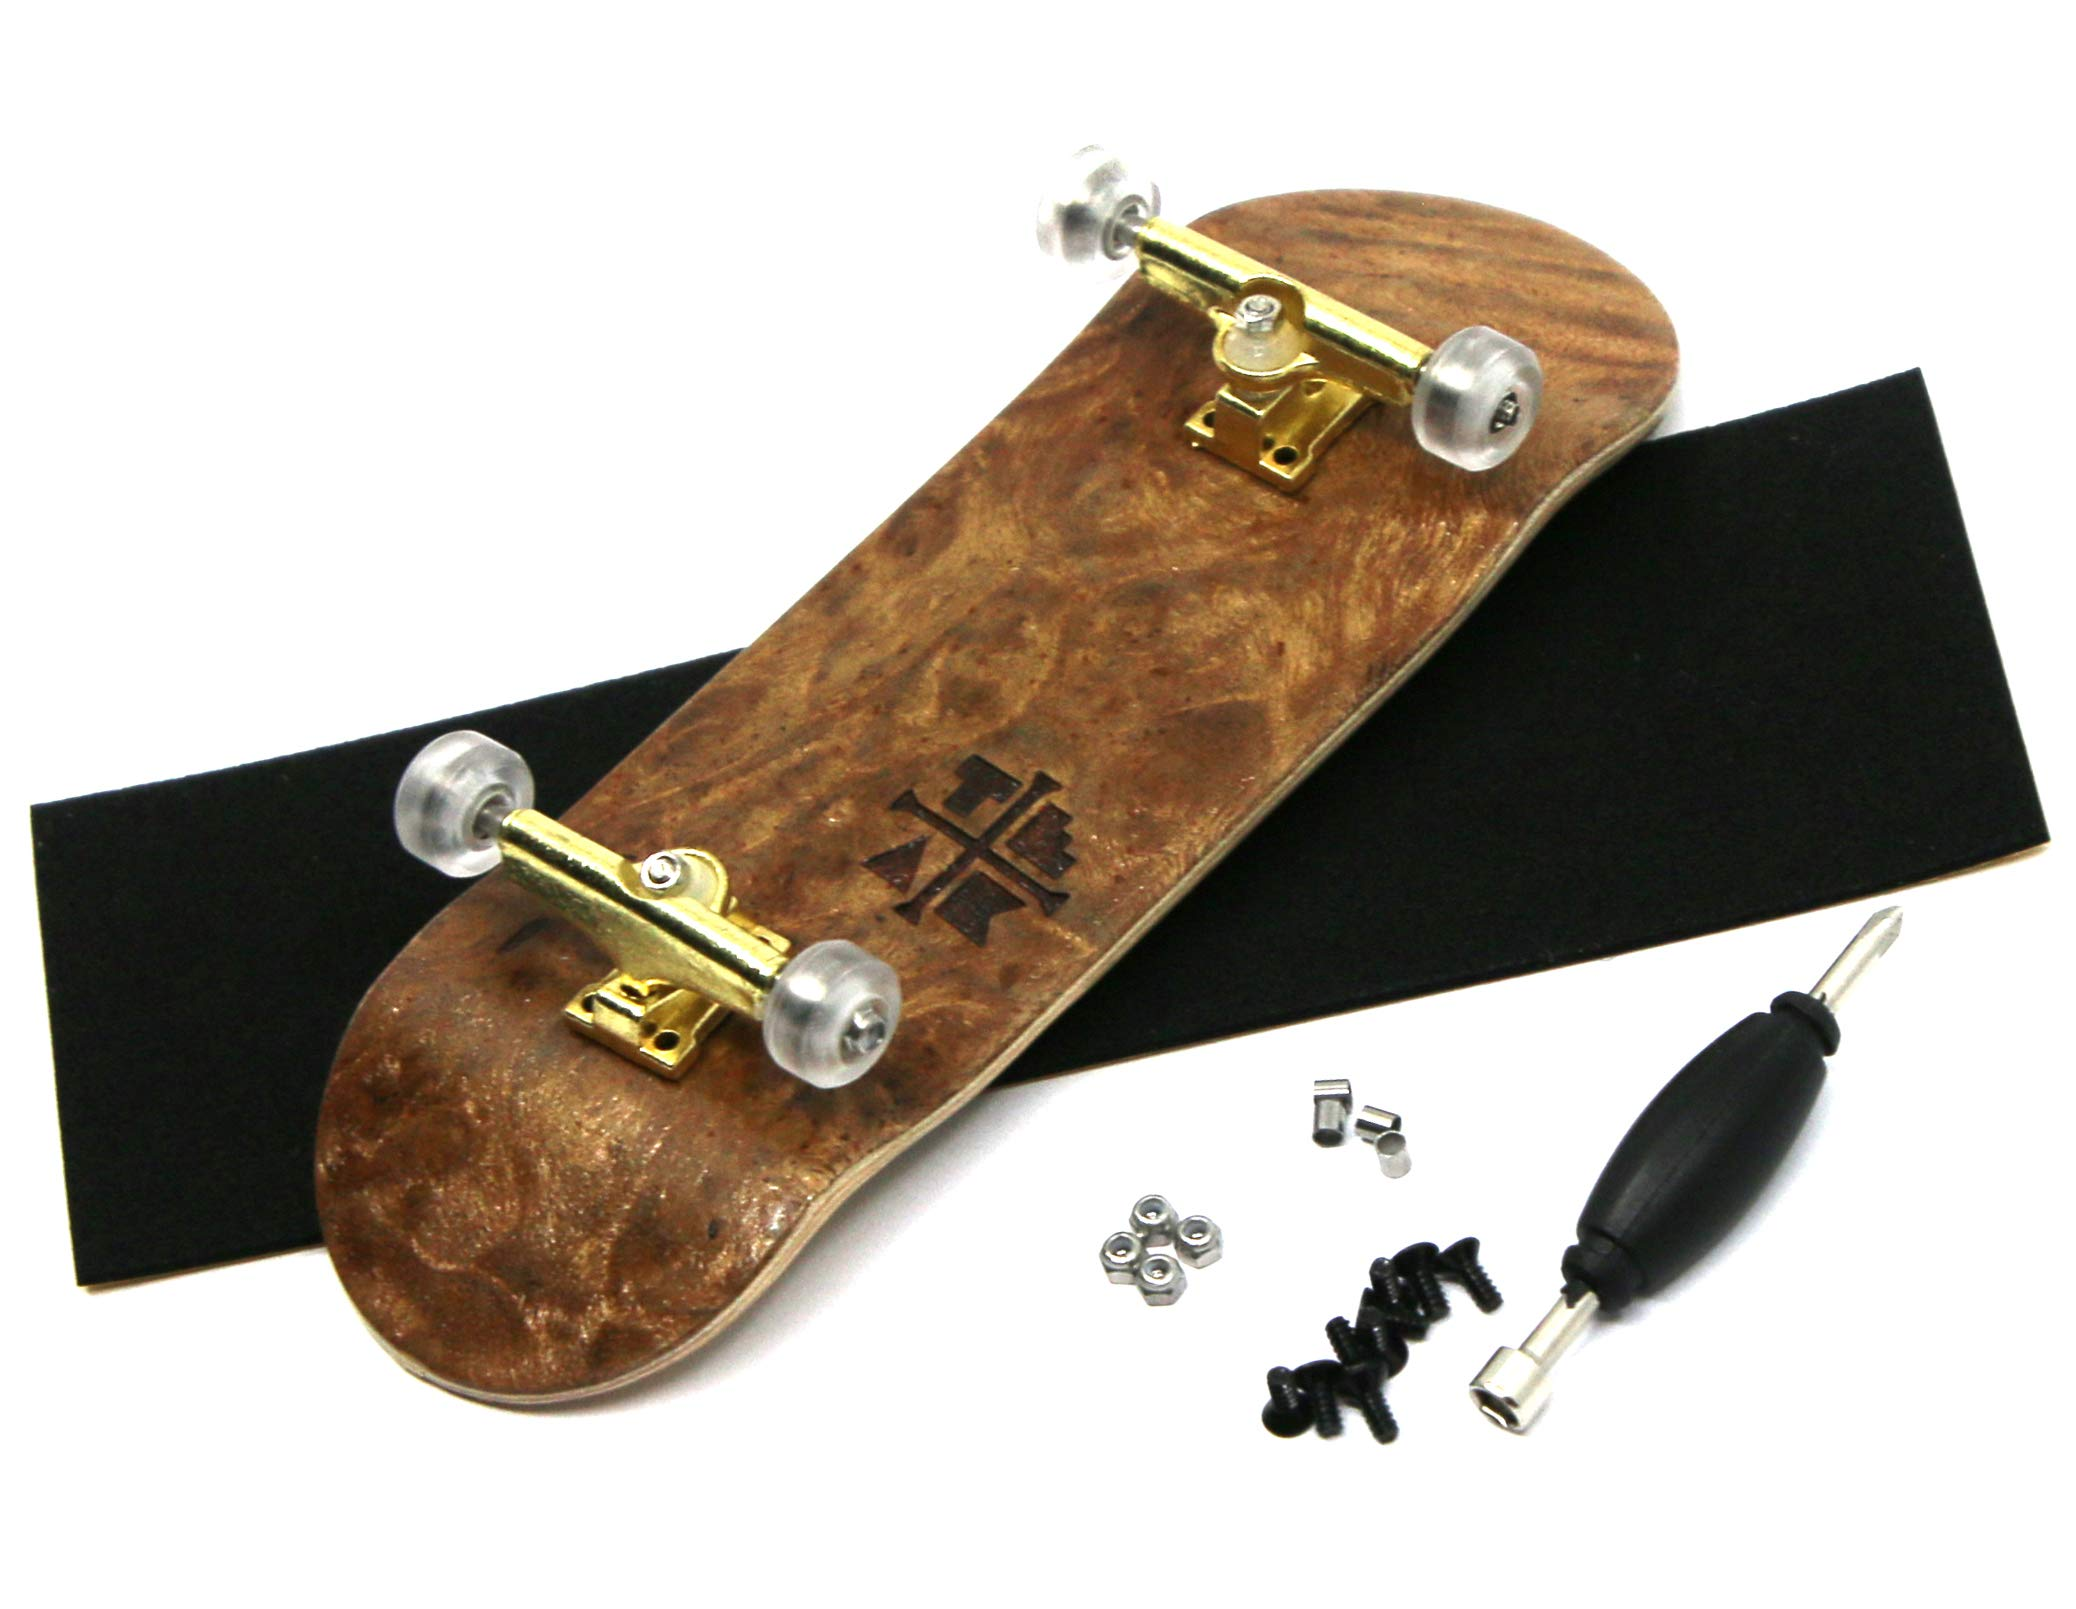 PROlific Complete Fingerboard with Upgraded Components - Pro Board Shape and Size, Bearing Wheels, Trucks, and Locknuts - 32mm x 97mm Handmade Wooden Board - Cloud Nine Engraved Edition by Teak Tuning